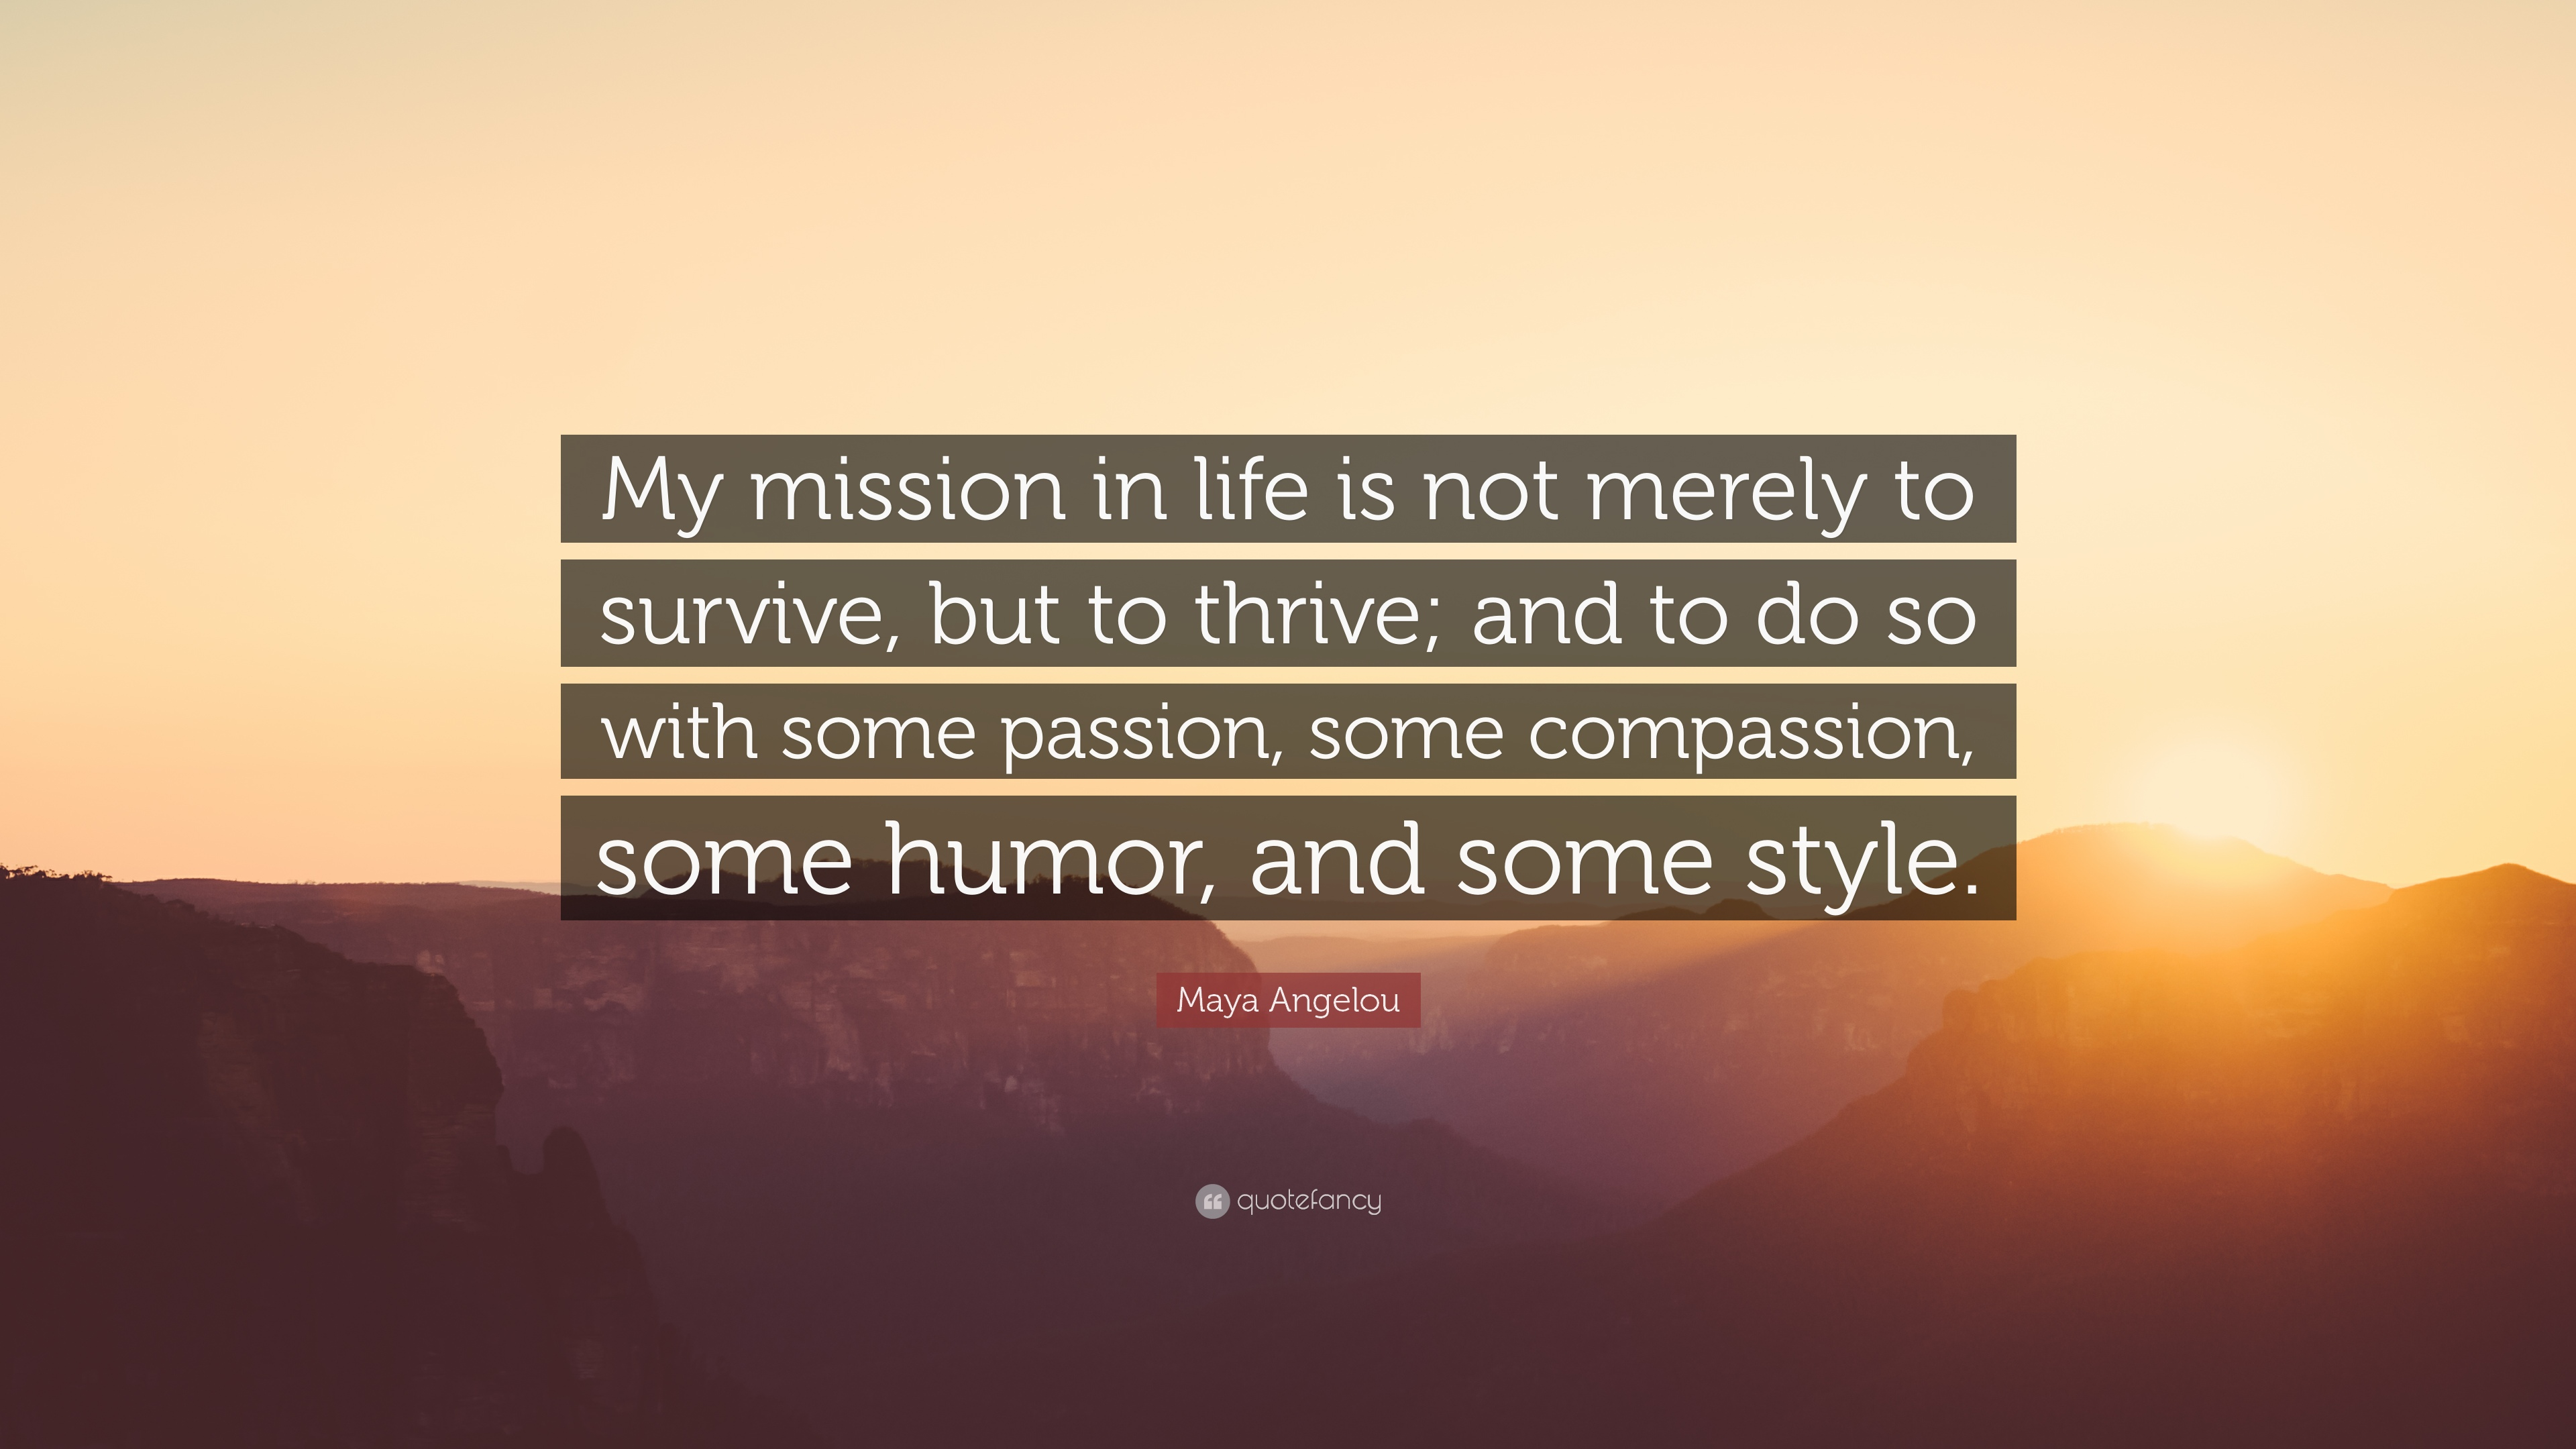 Maya Angelou Quote u201cMy mission in life